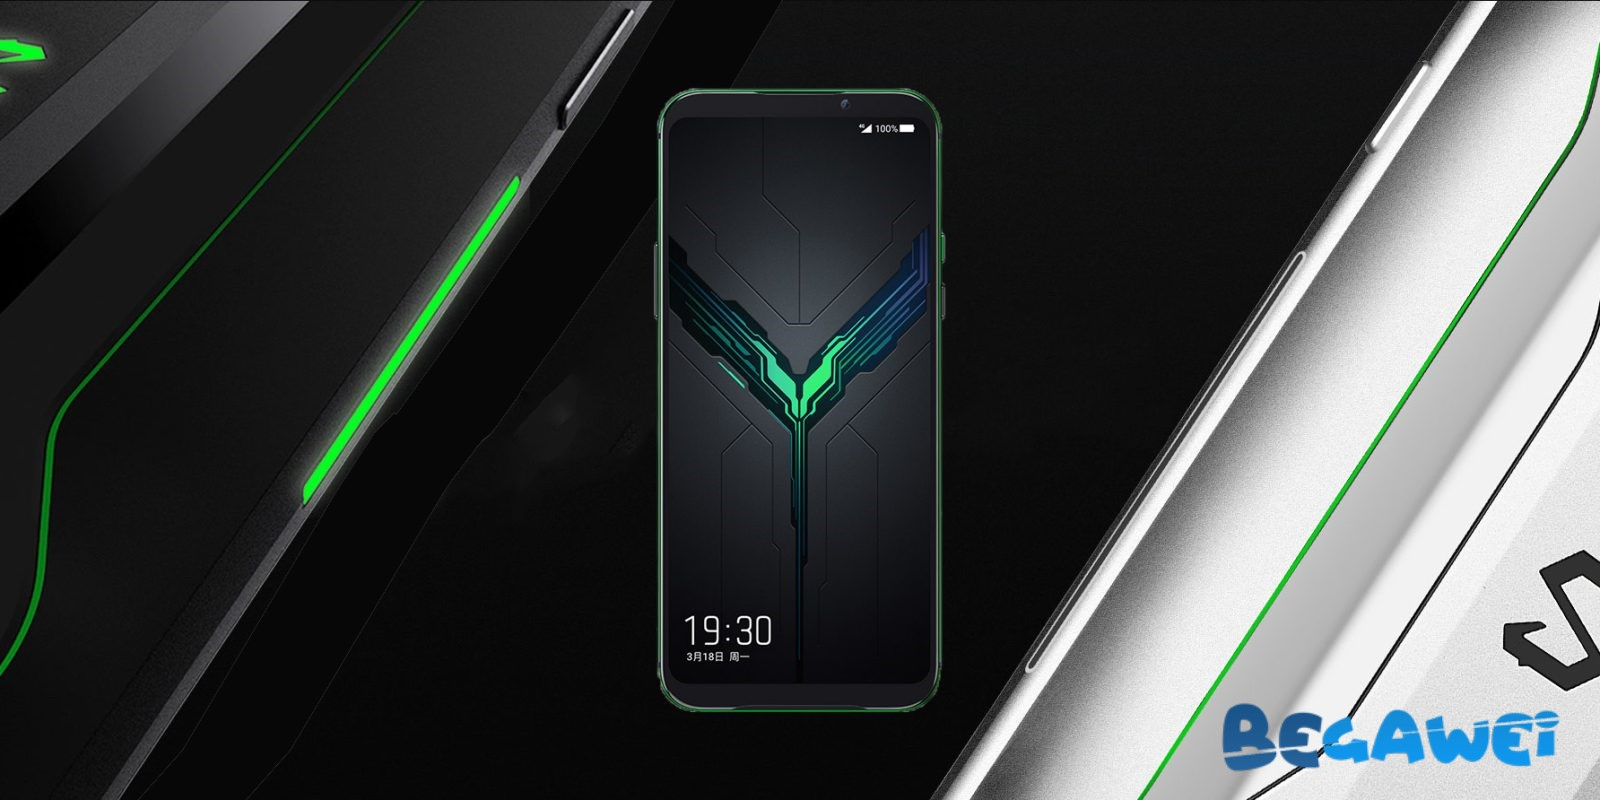 Spesifikasi HP Xiaomi Black Shark 2